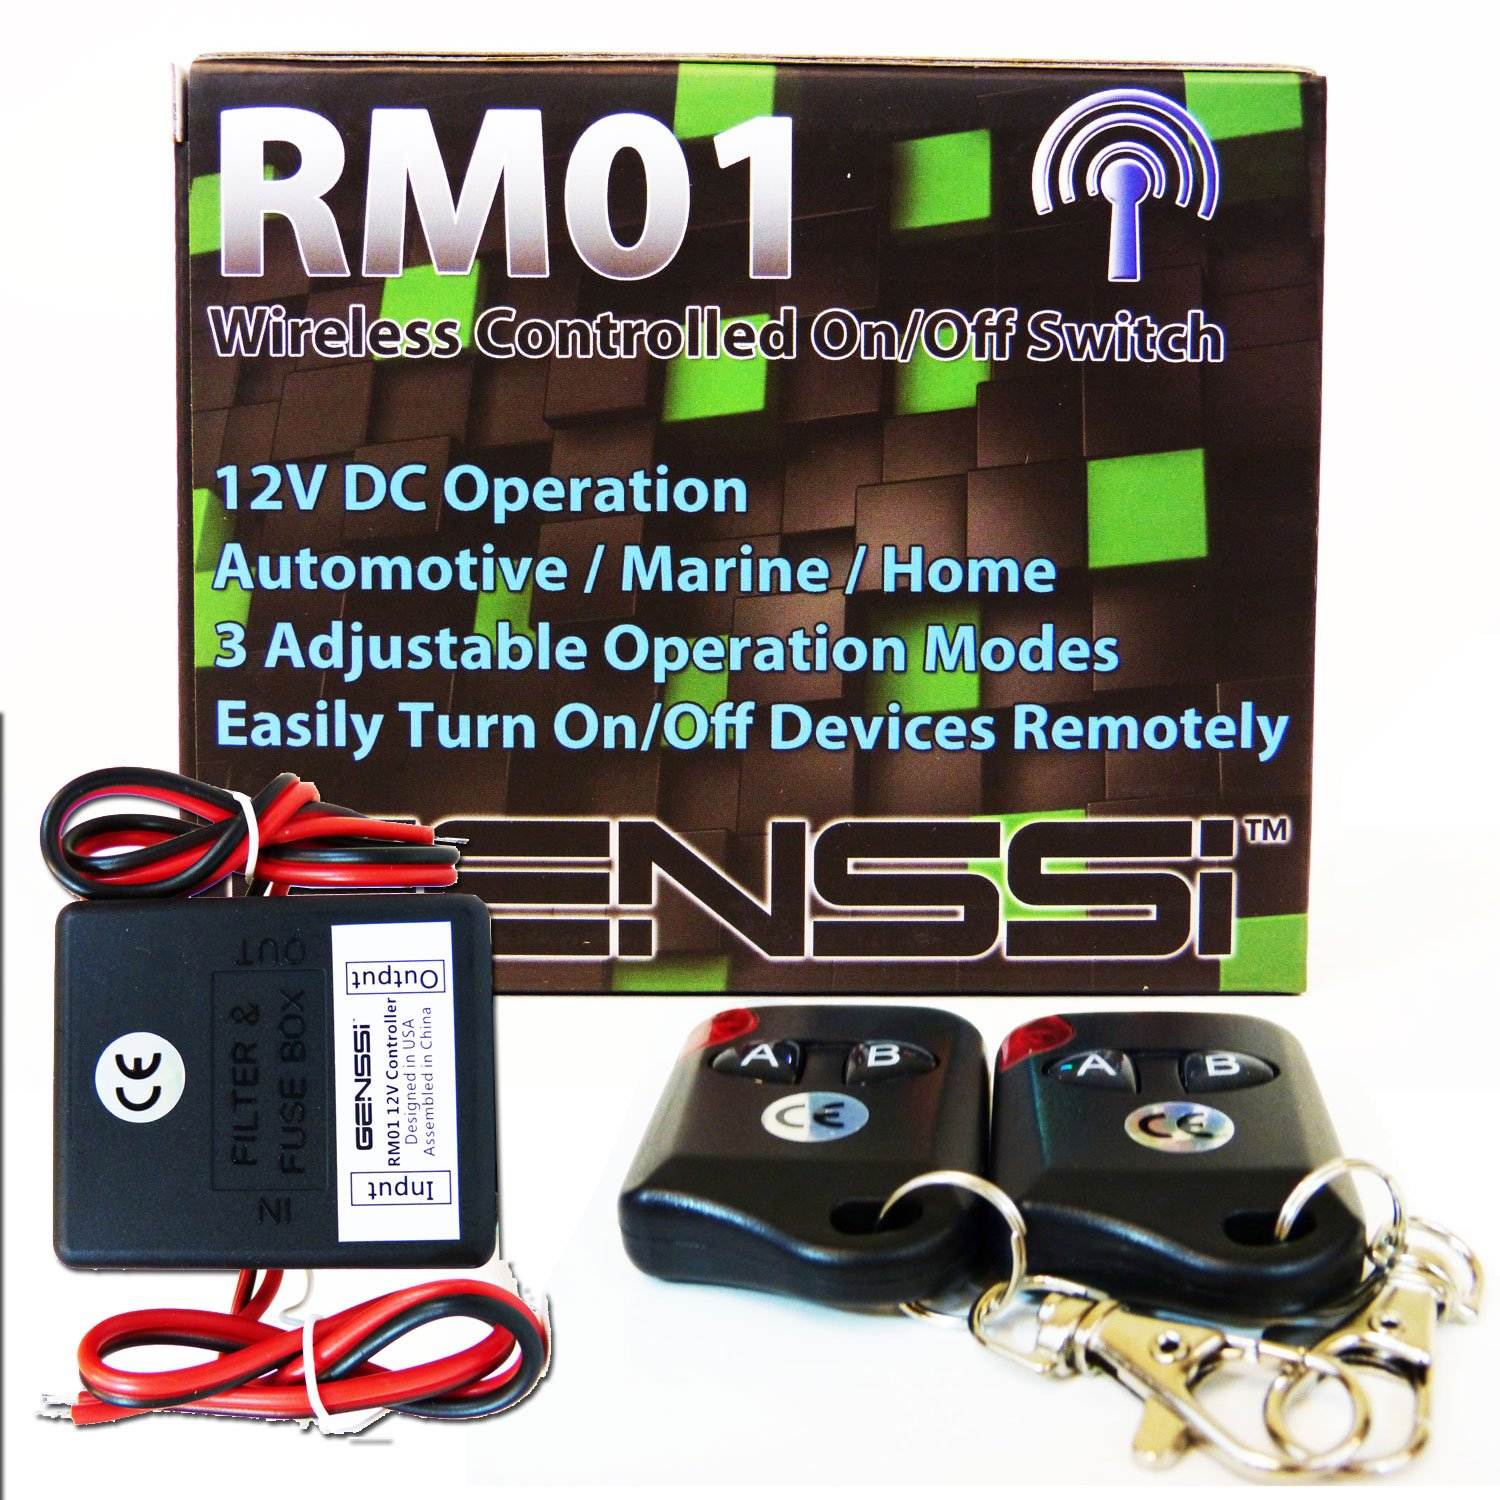 Genssi 12v Wireless On Off Transmitter Controller 2 Dc Fuse Box Home Remotes 1 Channel Remote Automotive